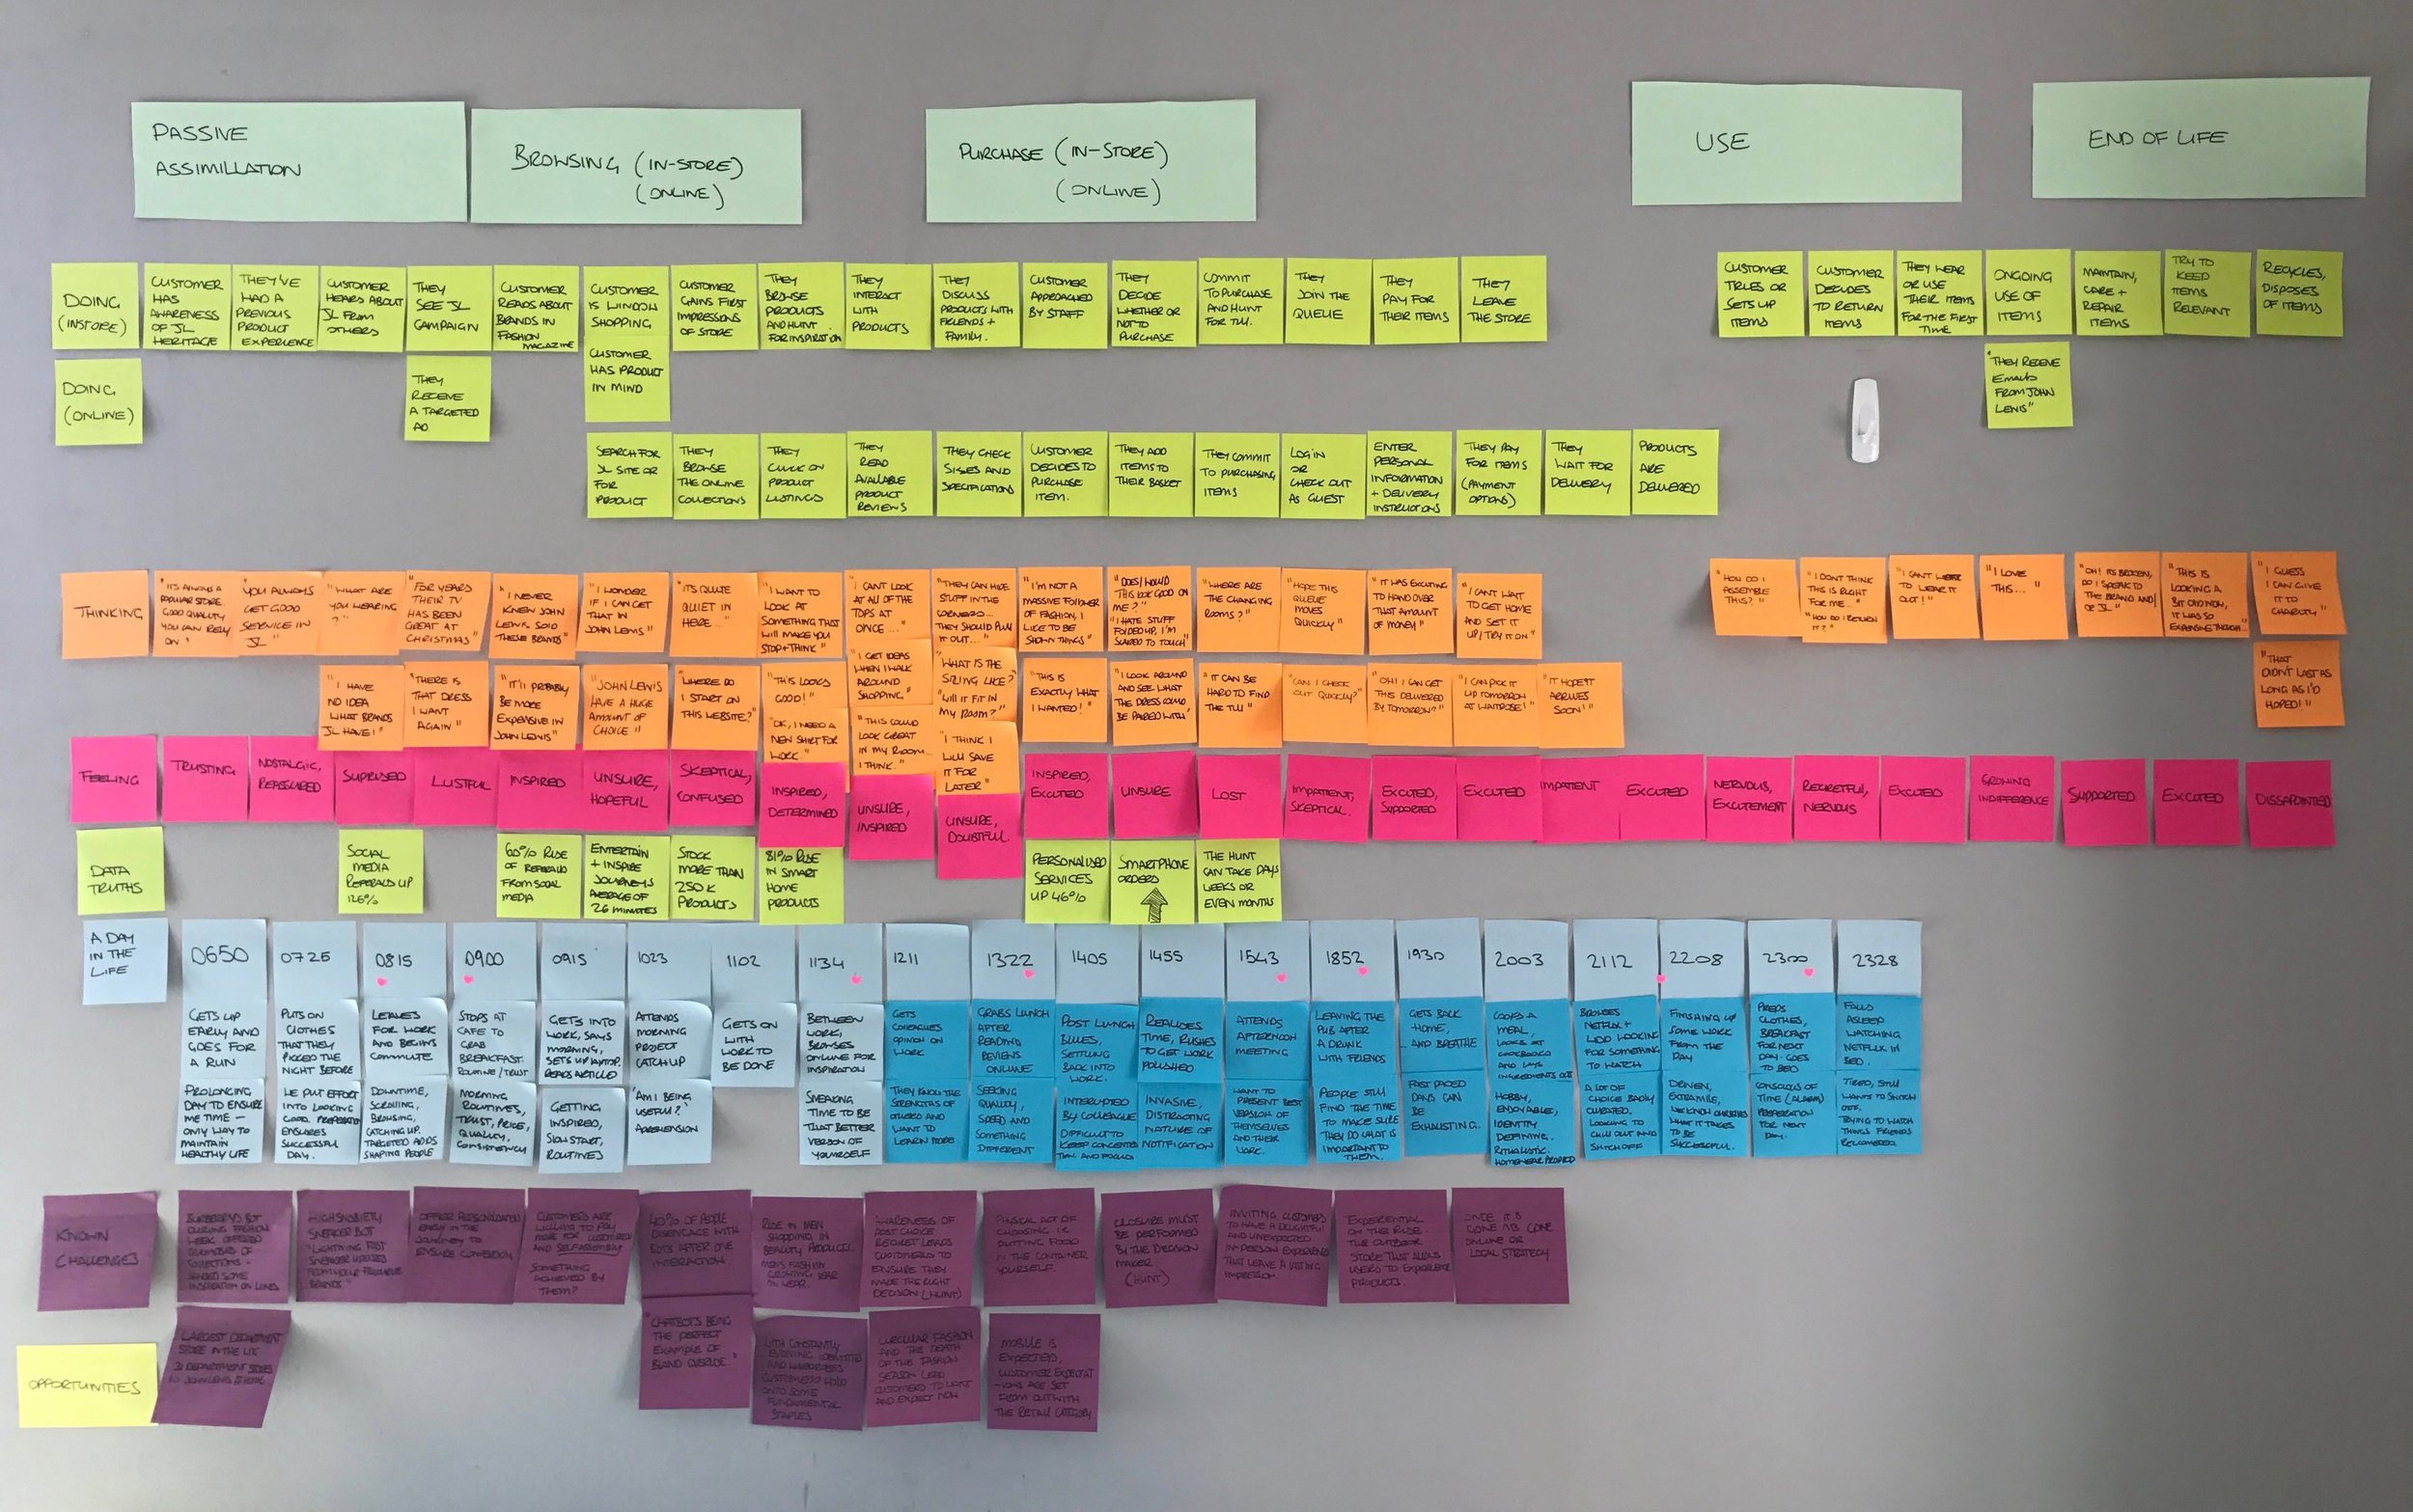 We mapped our finding into a customer experience map